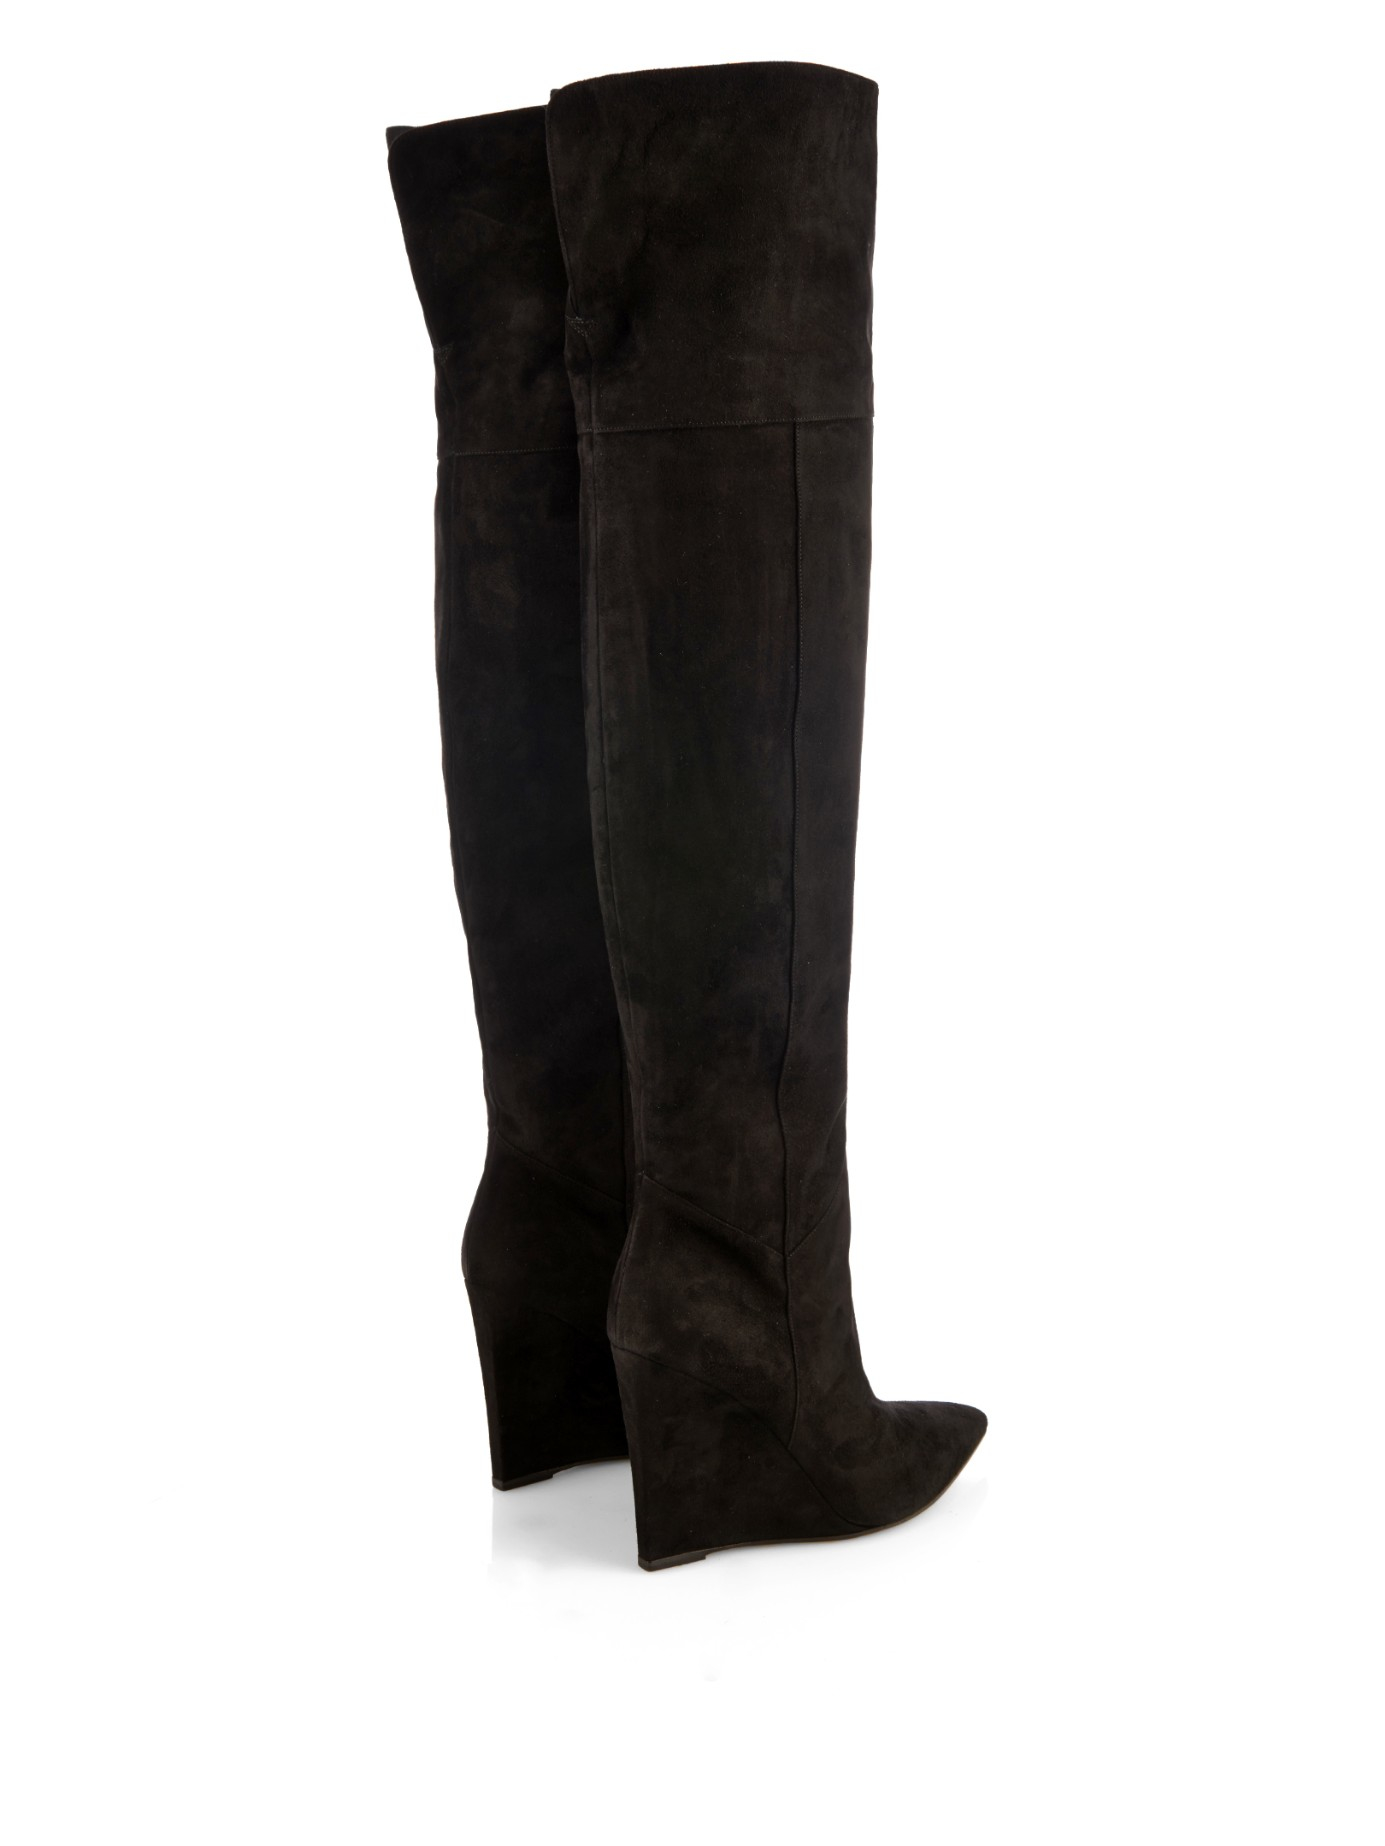 Saint laurent Over-the-knee Suede Wedge Boots in Black | Lyst